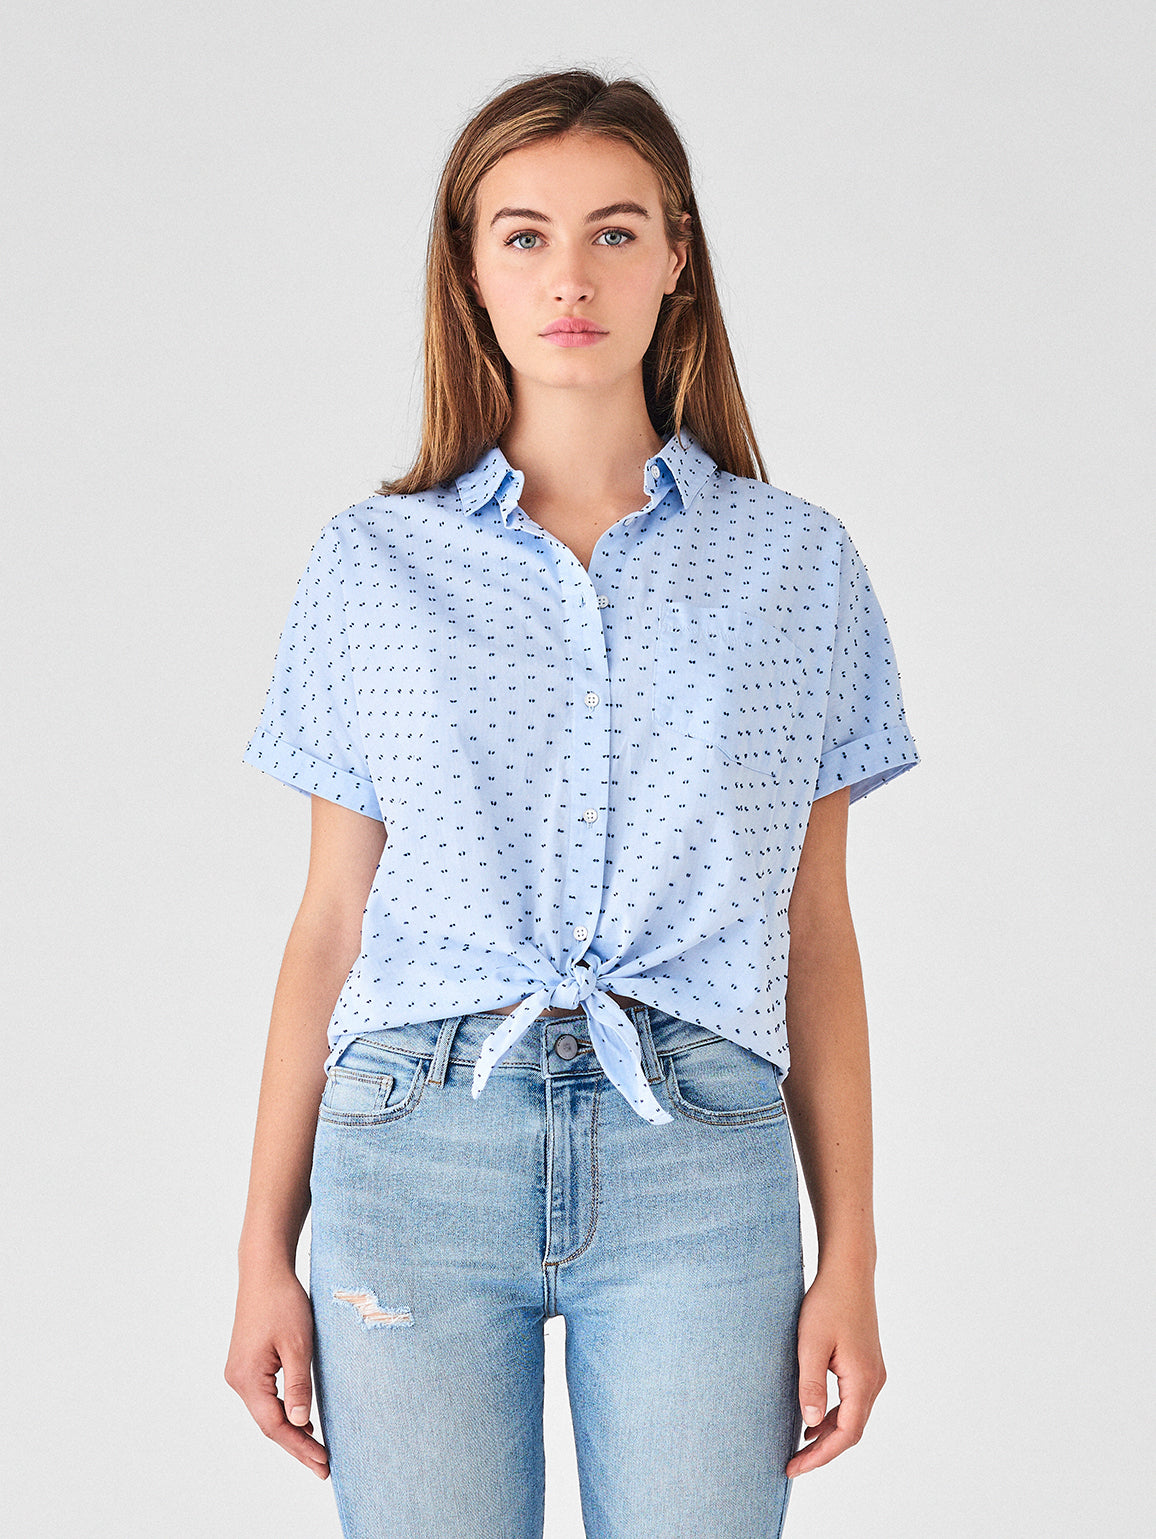 Chrystie St Top | Blue Dotted